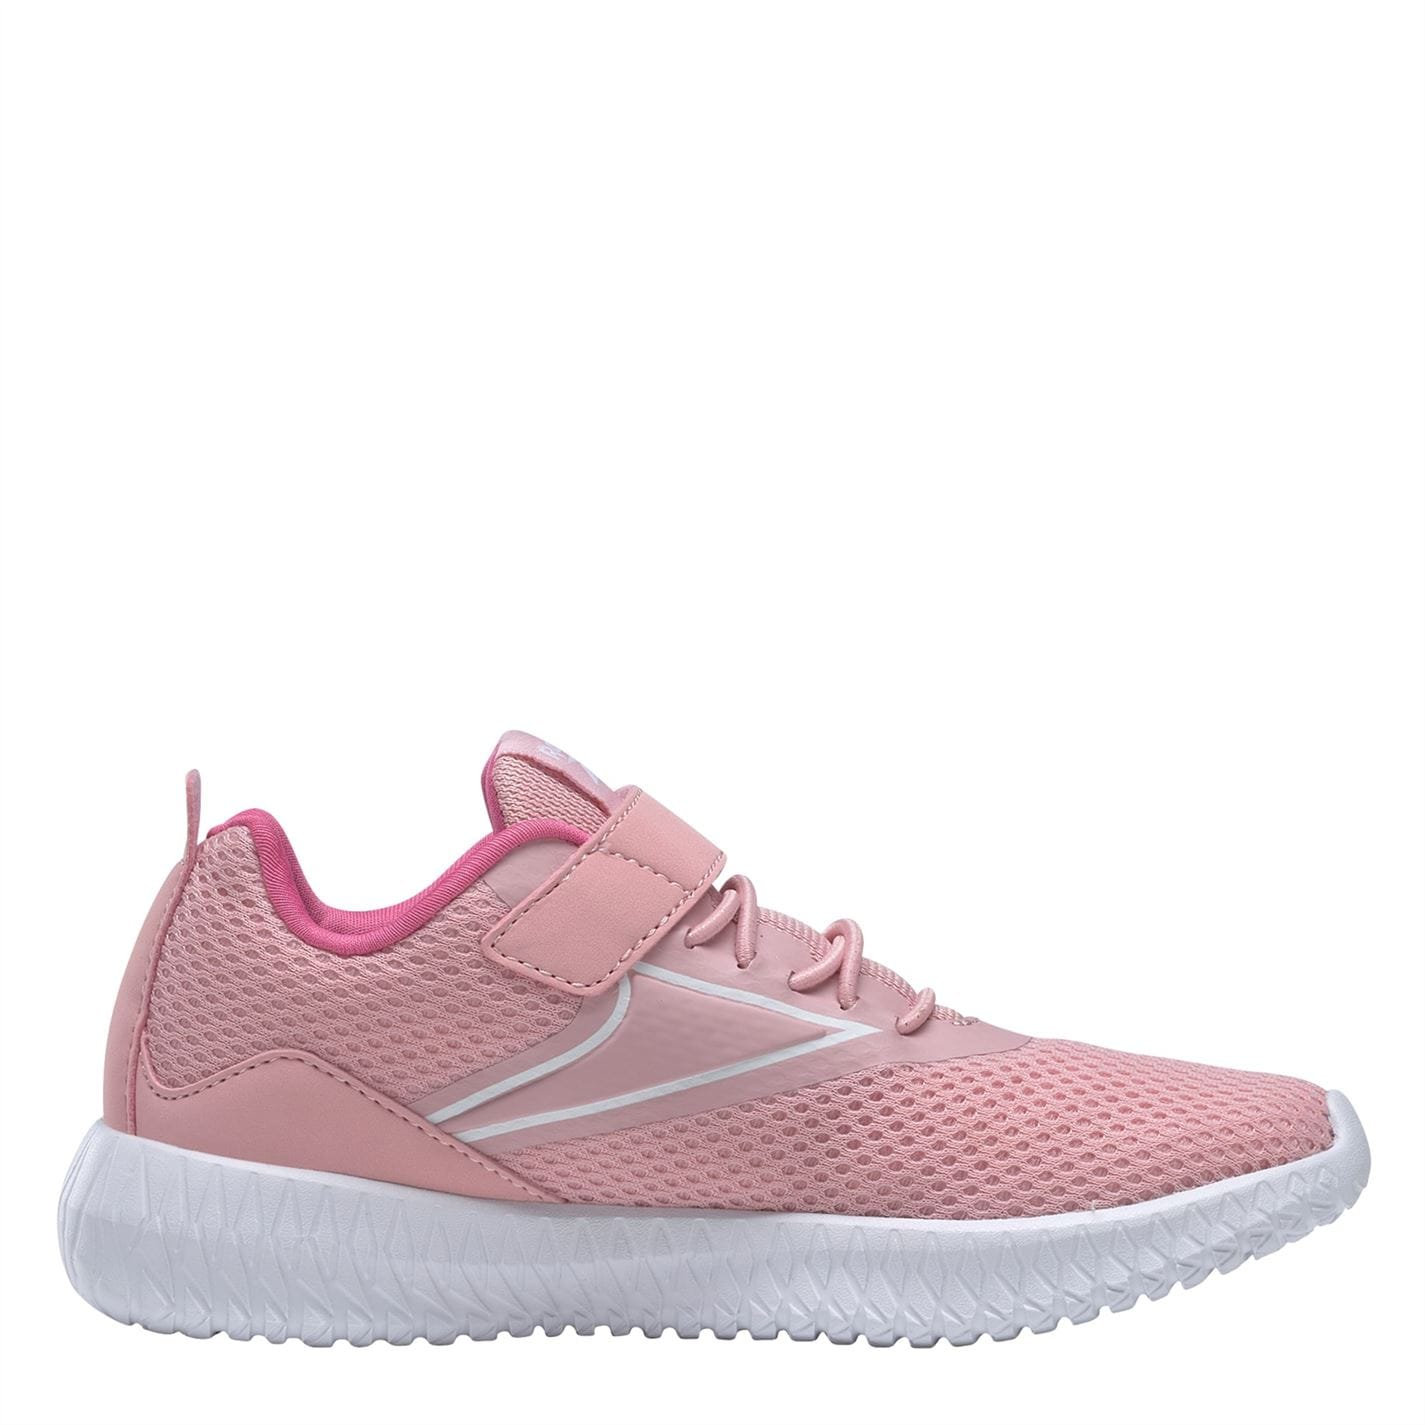 Reebok Flexagon Energy Kids Trainers Pink/White